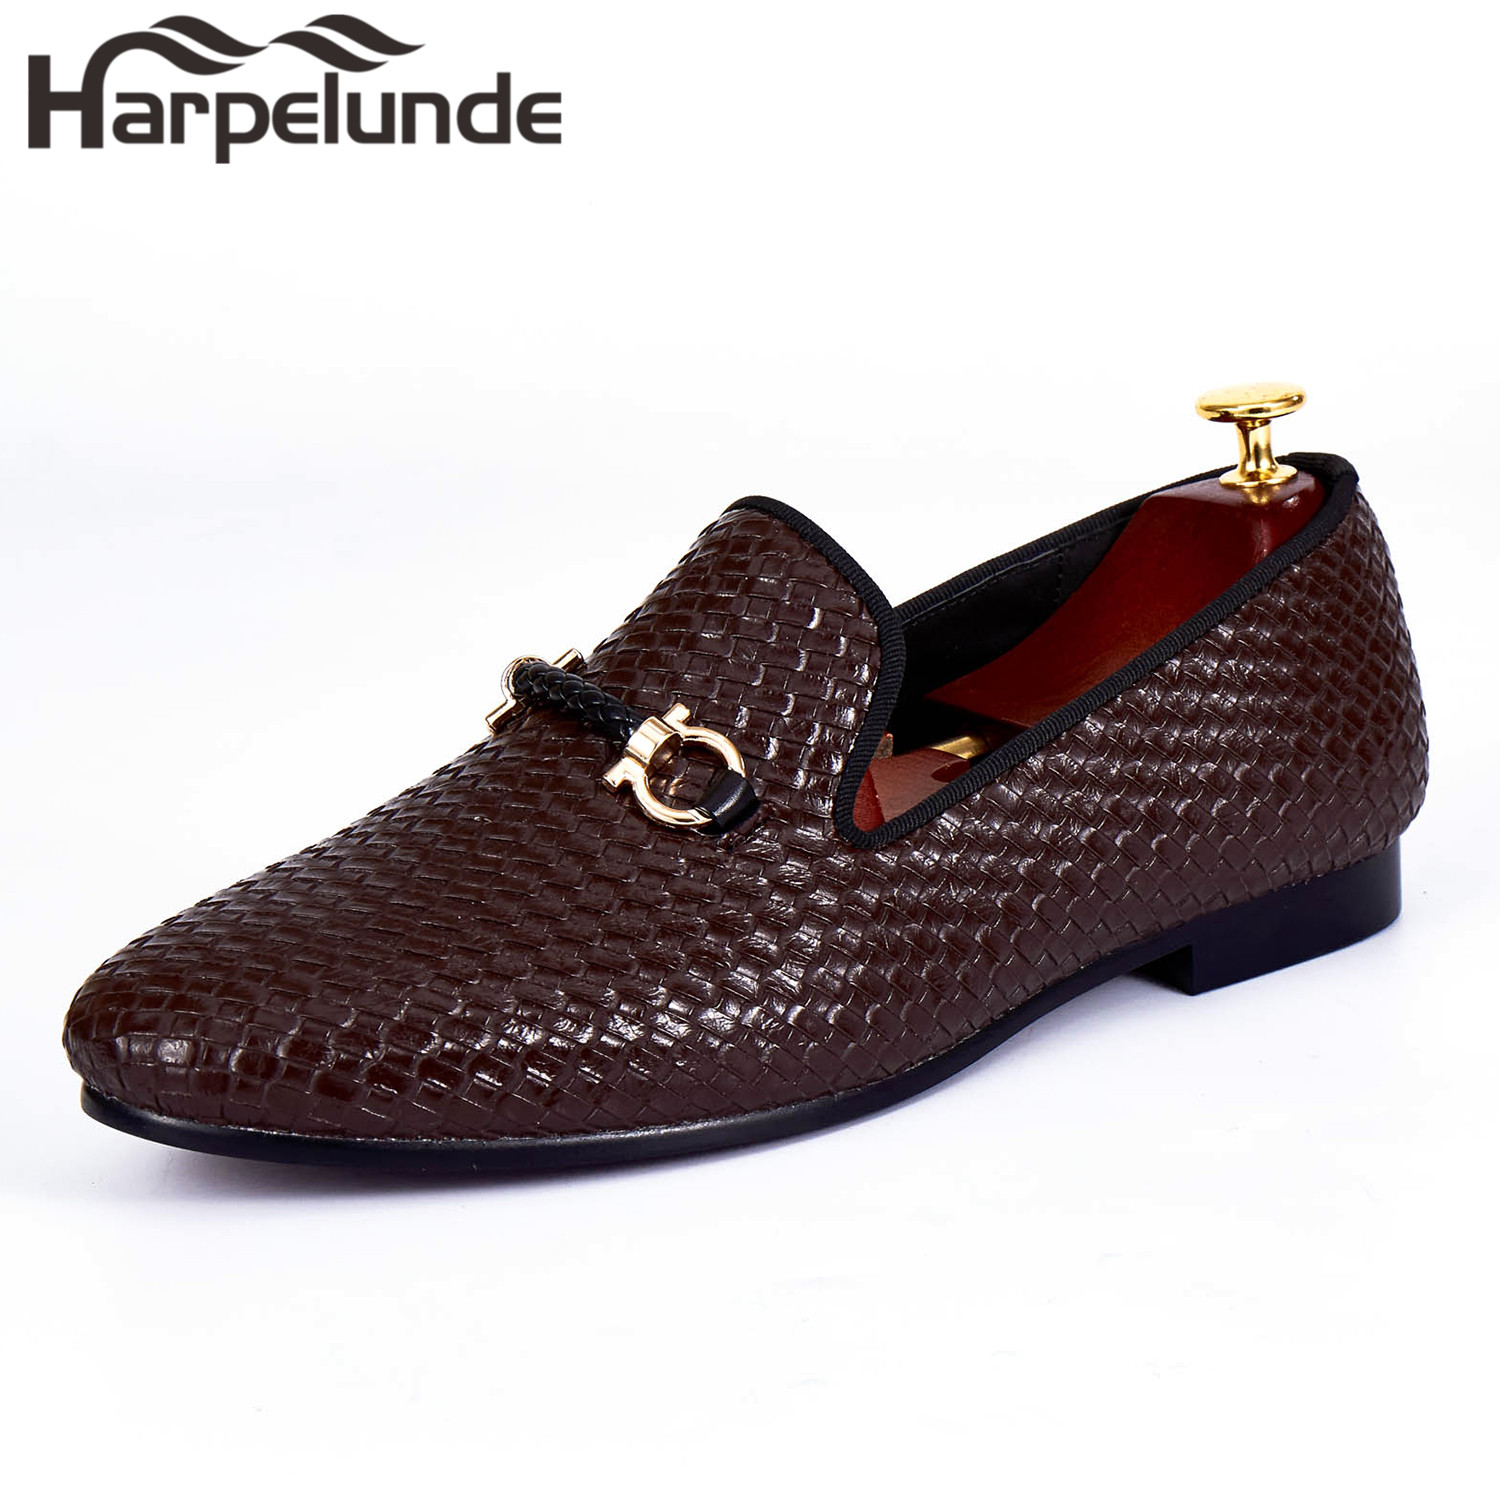 Harpelunde Woven Leather Men Wedding Shoes Buckle Handmade Flat Loafers Size 6-14Harpelunde Woven Leather Men Wedding Shoes Buckle Handmade Flat Loafers Size 6-14